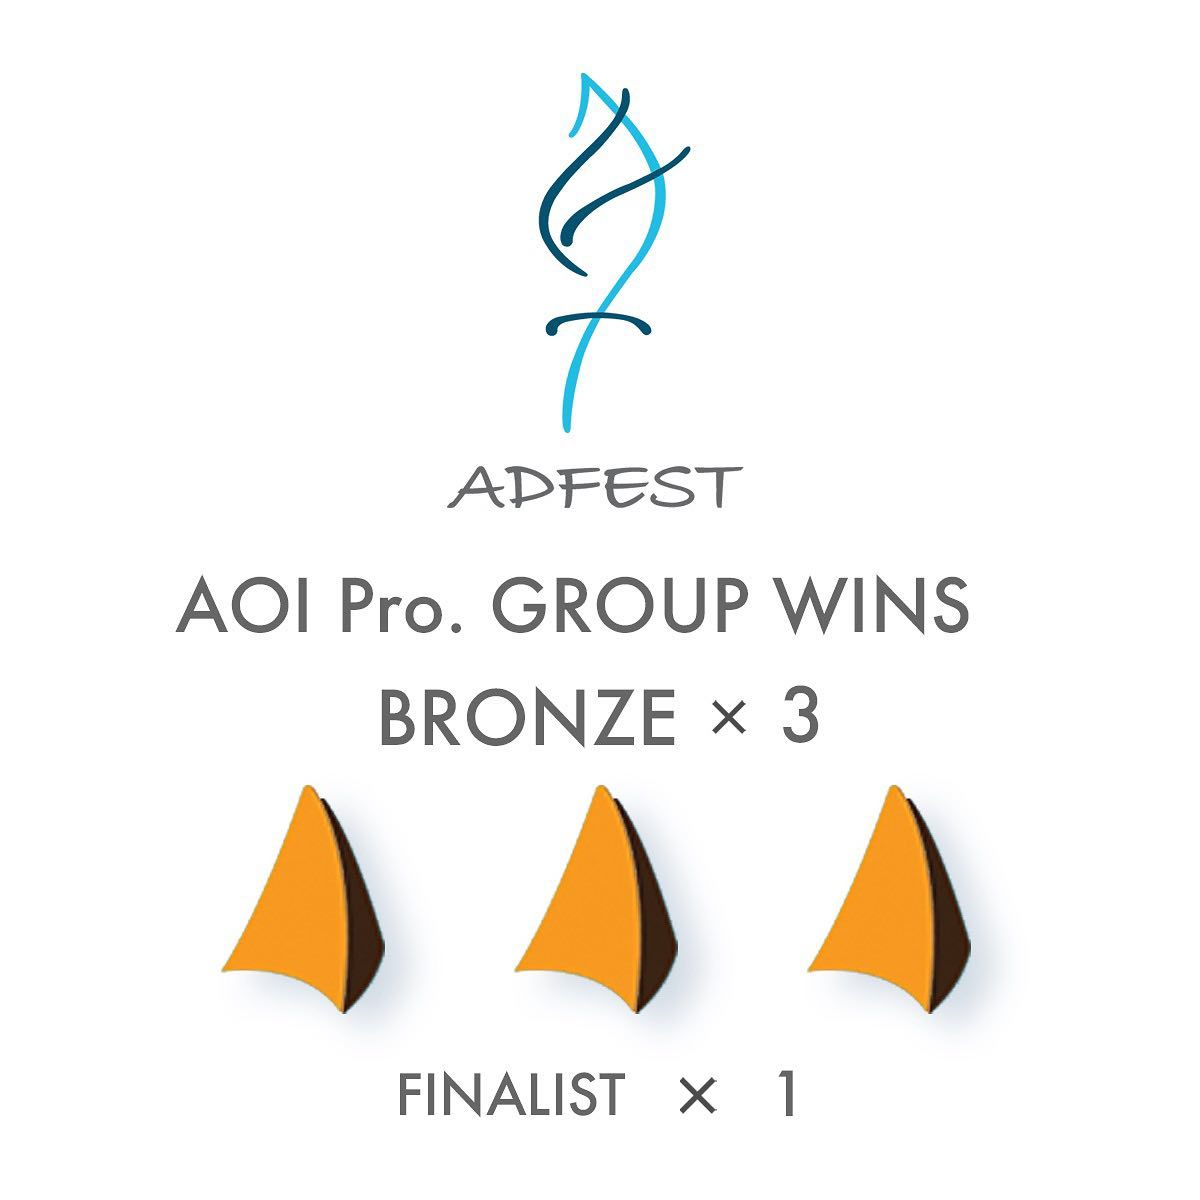 """AOI Pro. Group celebrates ADFEST 2021 with 3 Bronze Lotus Award wins and 1 Finalist. 🥉🥉🥉 Congratulations to everyone who worked on it!  ----- AOI Pro. ----- 🎗FINALIST: FILM CRAFT LOTUS - ANIMATION (IN-CAMERA OR DIGITAL) COLEMAN BRAND MOVIE 2020 【THE COLEMANS】〜REVIVE! THE FAMILY BOND EPISODE〜  ----- @directorsthinktank ----- 🥉BRONZE: FILM CRAFT LOTUS - CINEMATOGRAPHY Coway """"A Life Changing Journey""""  🥉BRONZE: FILM CRAFT LOTUS - USE OF MUSIC TRACK Libresse """"Libresse - Know Your V""""  🥉BRONZE: NEW DIRECTOR LOTUS - COMMISSIONED SPOT Citra Pariwara 33 """"Little Light"""" ・・・"""